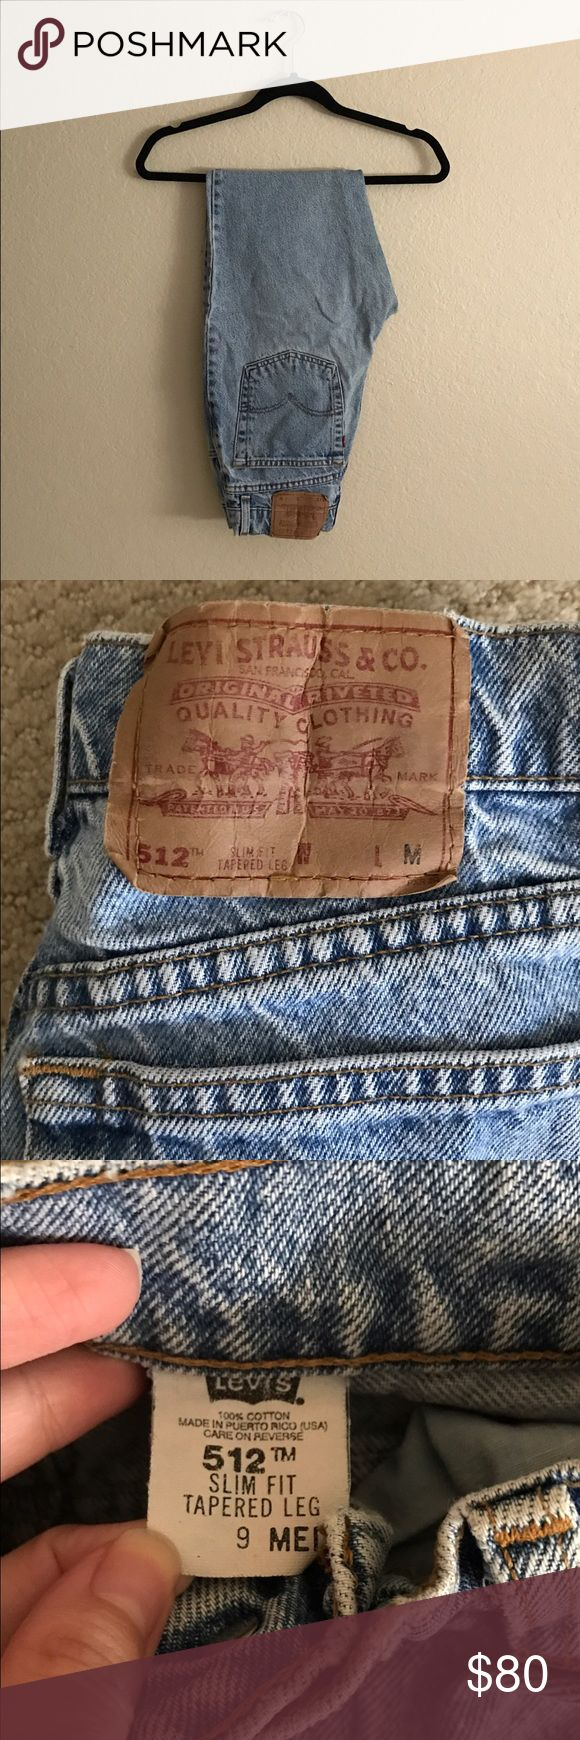 Levi's 512 High Waisted Mom Jeans Perfect pair of vintage jeans  Levi's 512 tapered leg   Marked as a size 9 Med  Would fit size 26-27 waist   ❌ NO TRADES OR TRY ONS ❌ Levi's Jeans